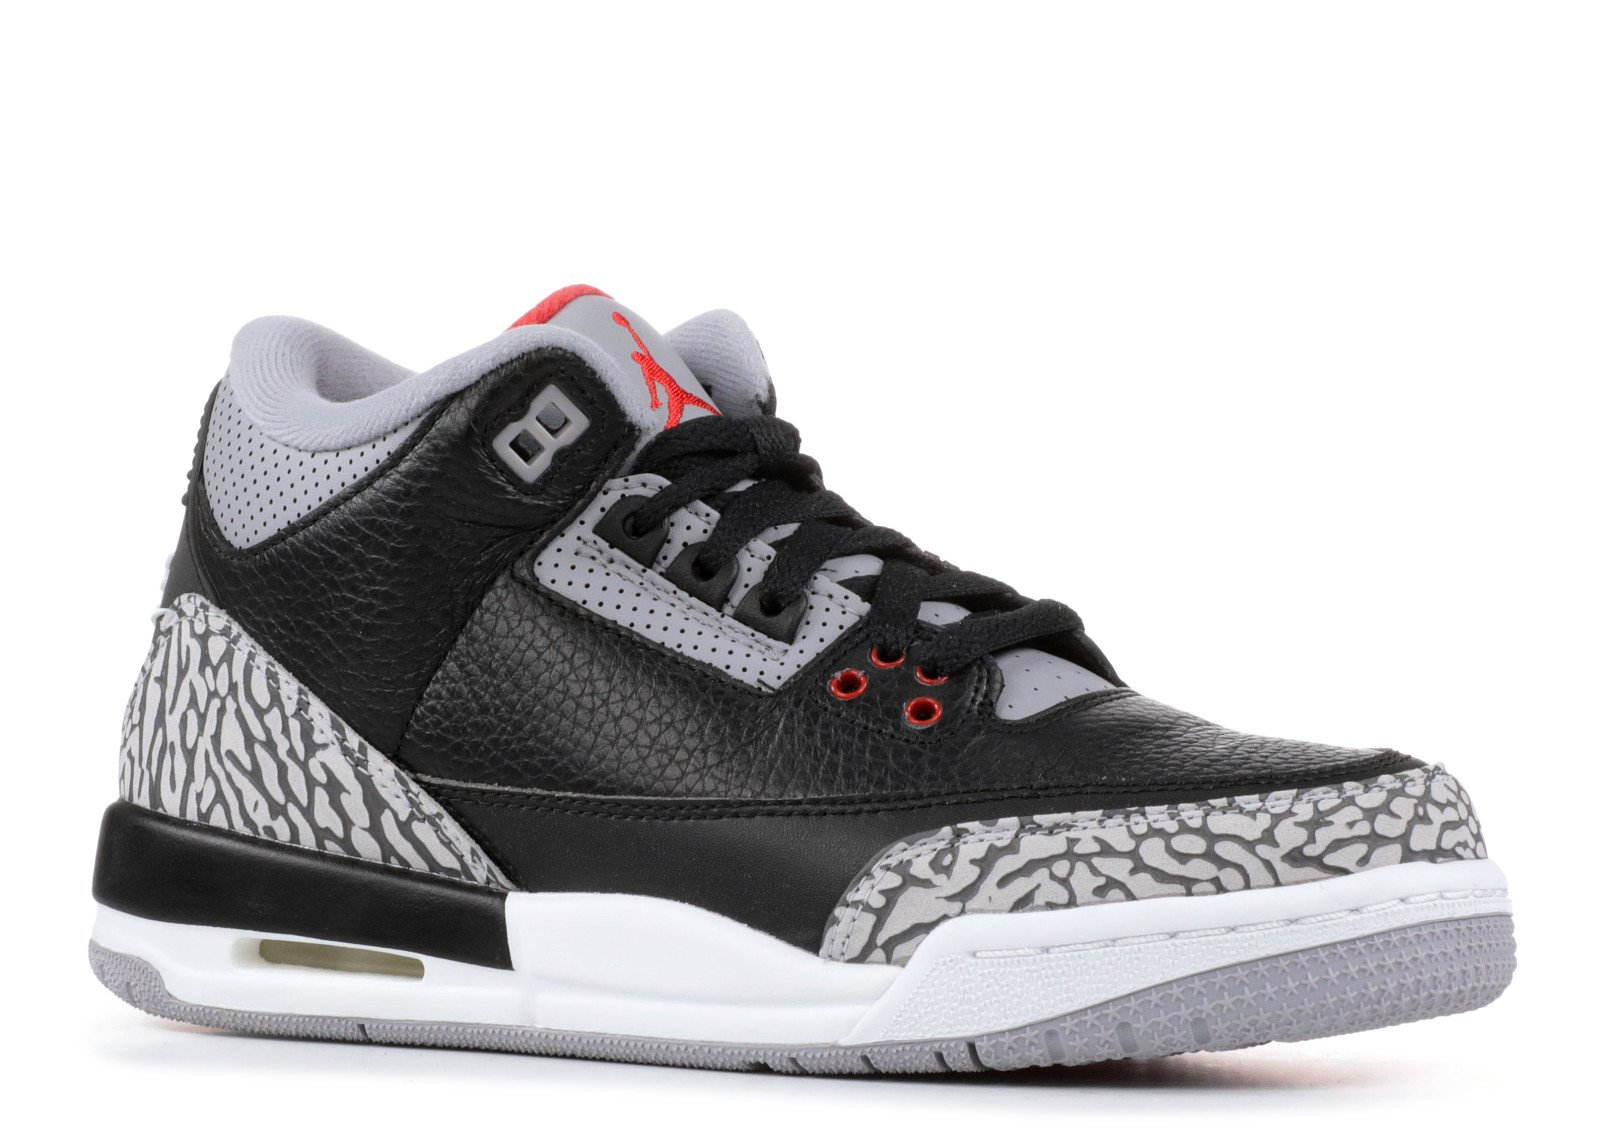 Jordan Air 3 Retro OG Big Kids' Basketball Shoes Black/Fire Red/Cement Grey 854261-001 (3.5 M US)